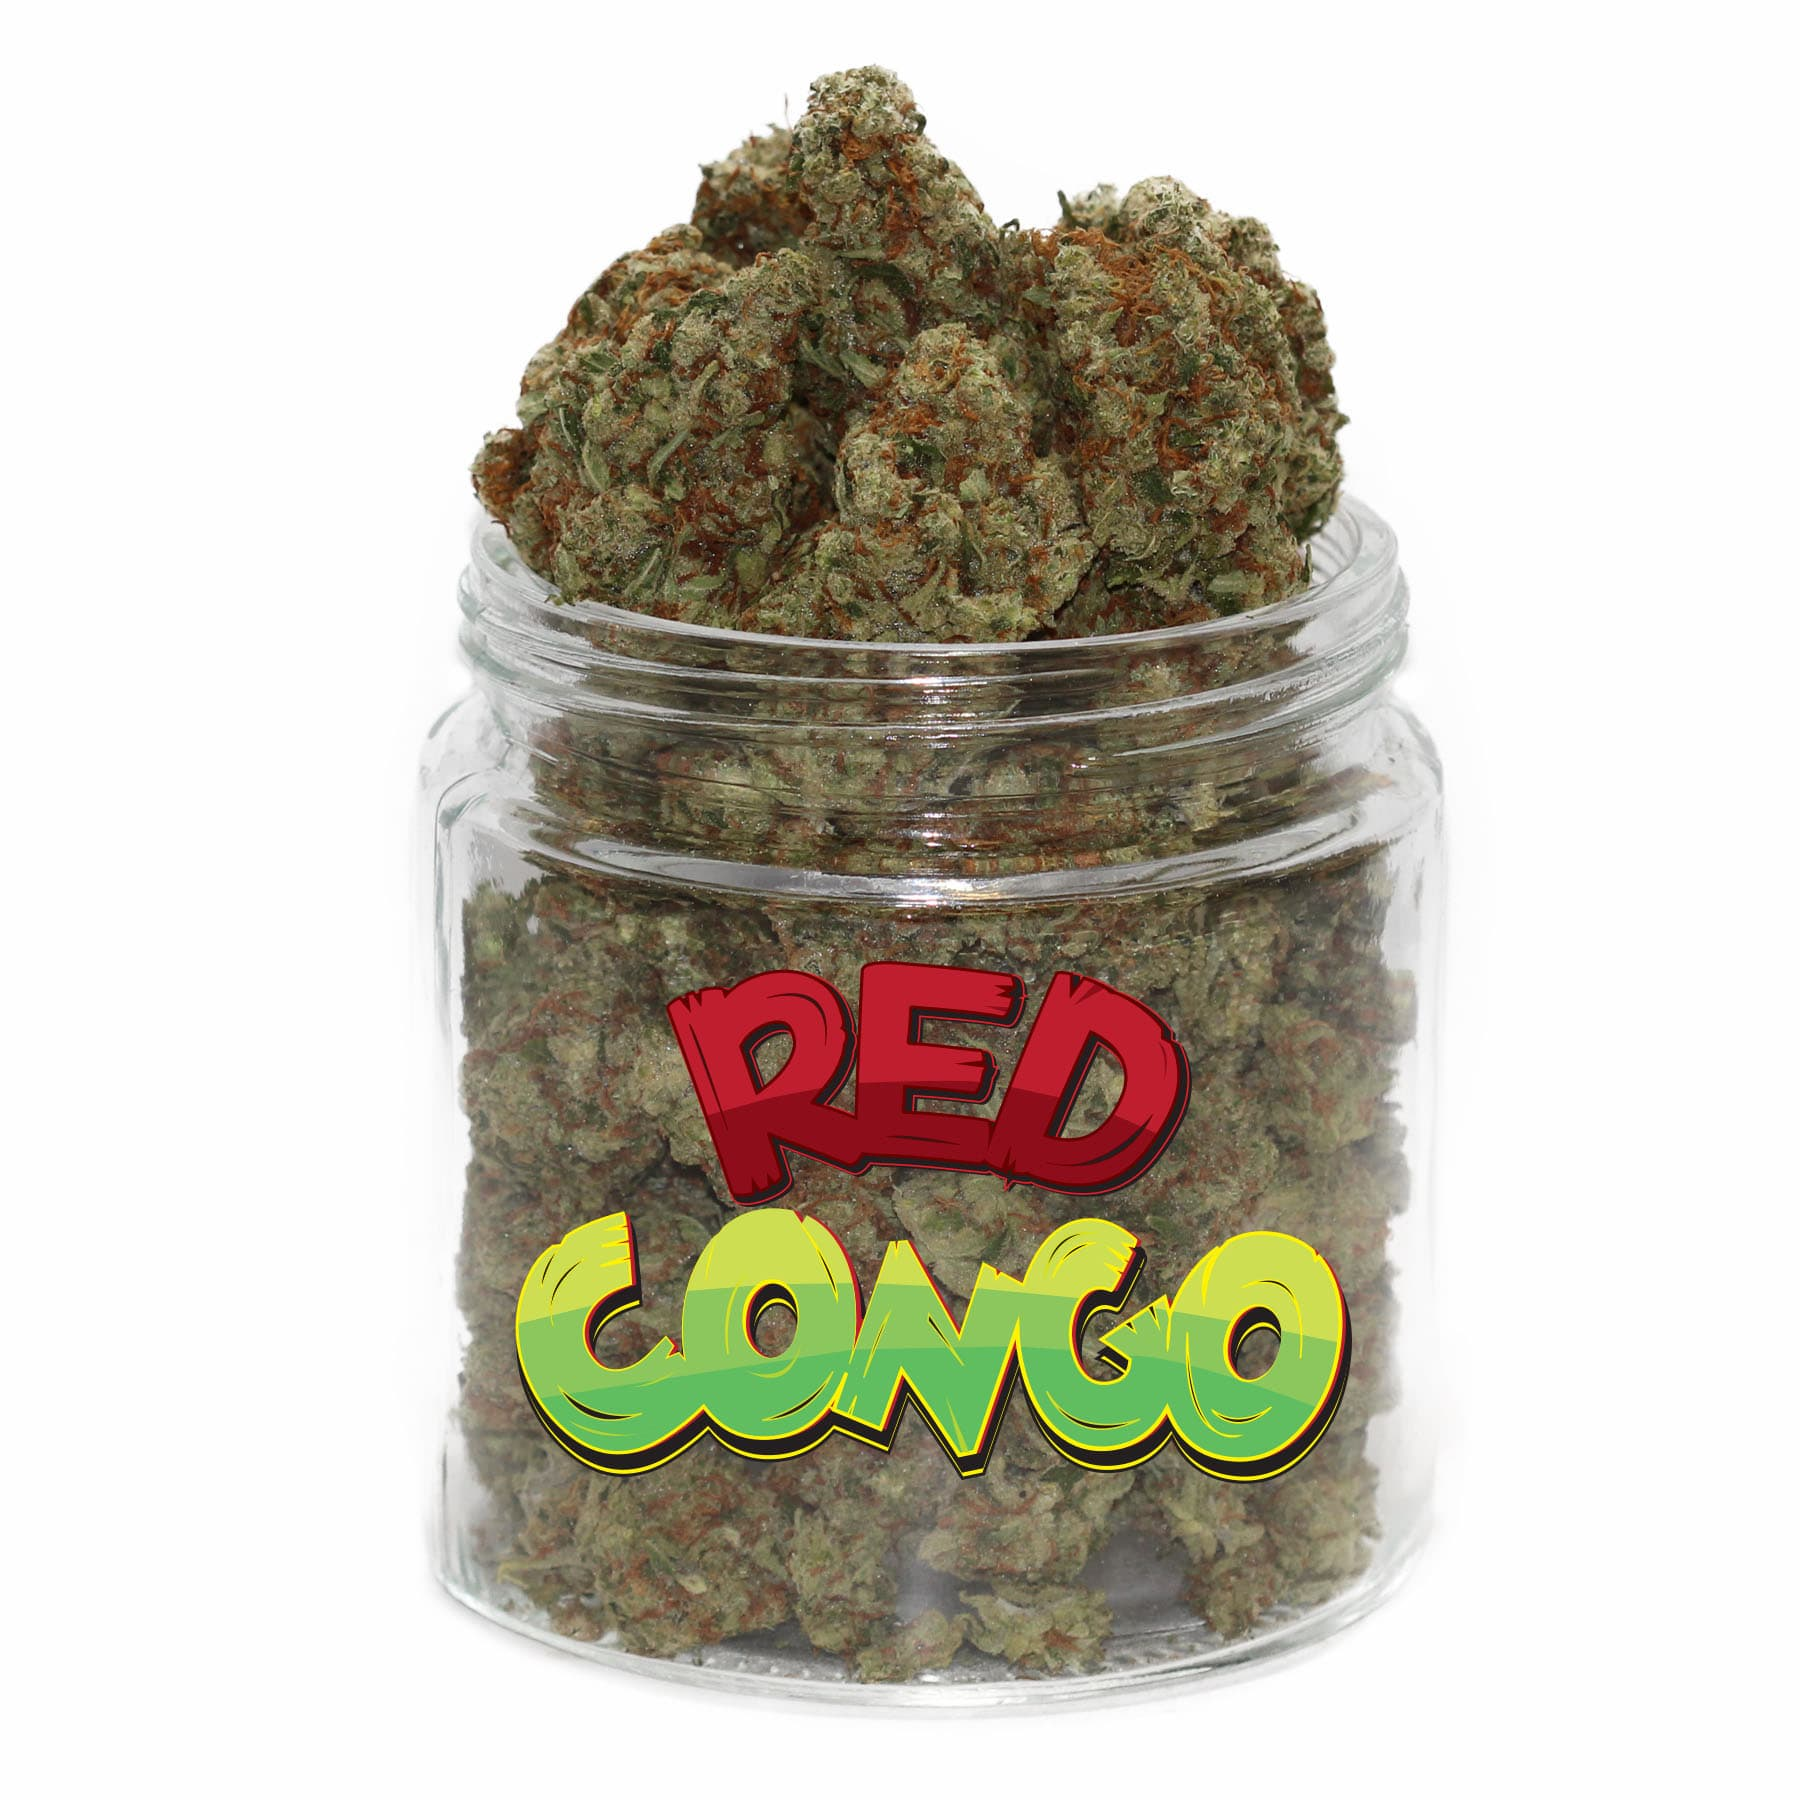 Red Congo (AAAA) by Get Kush - Image © 2018 Get Kush. All Rights Reserved.